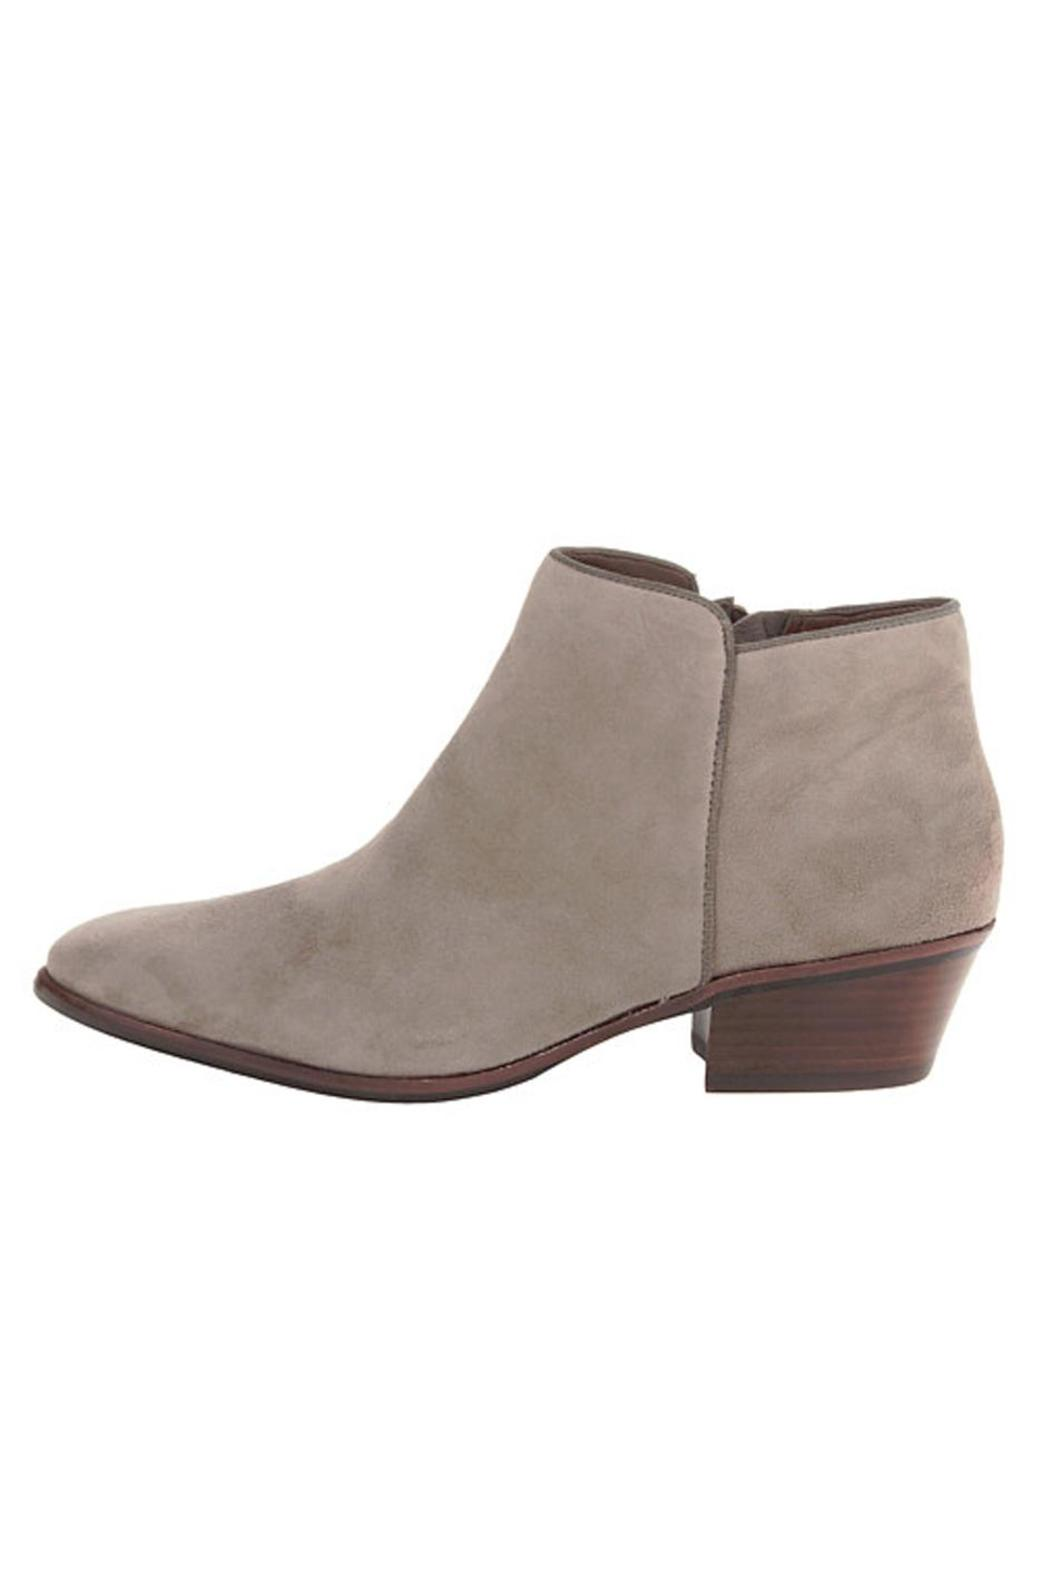 Sam Edelman Taupe Ankle Bootie from Long Island by ...